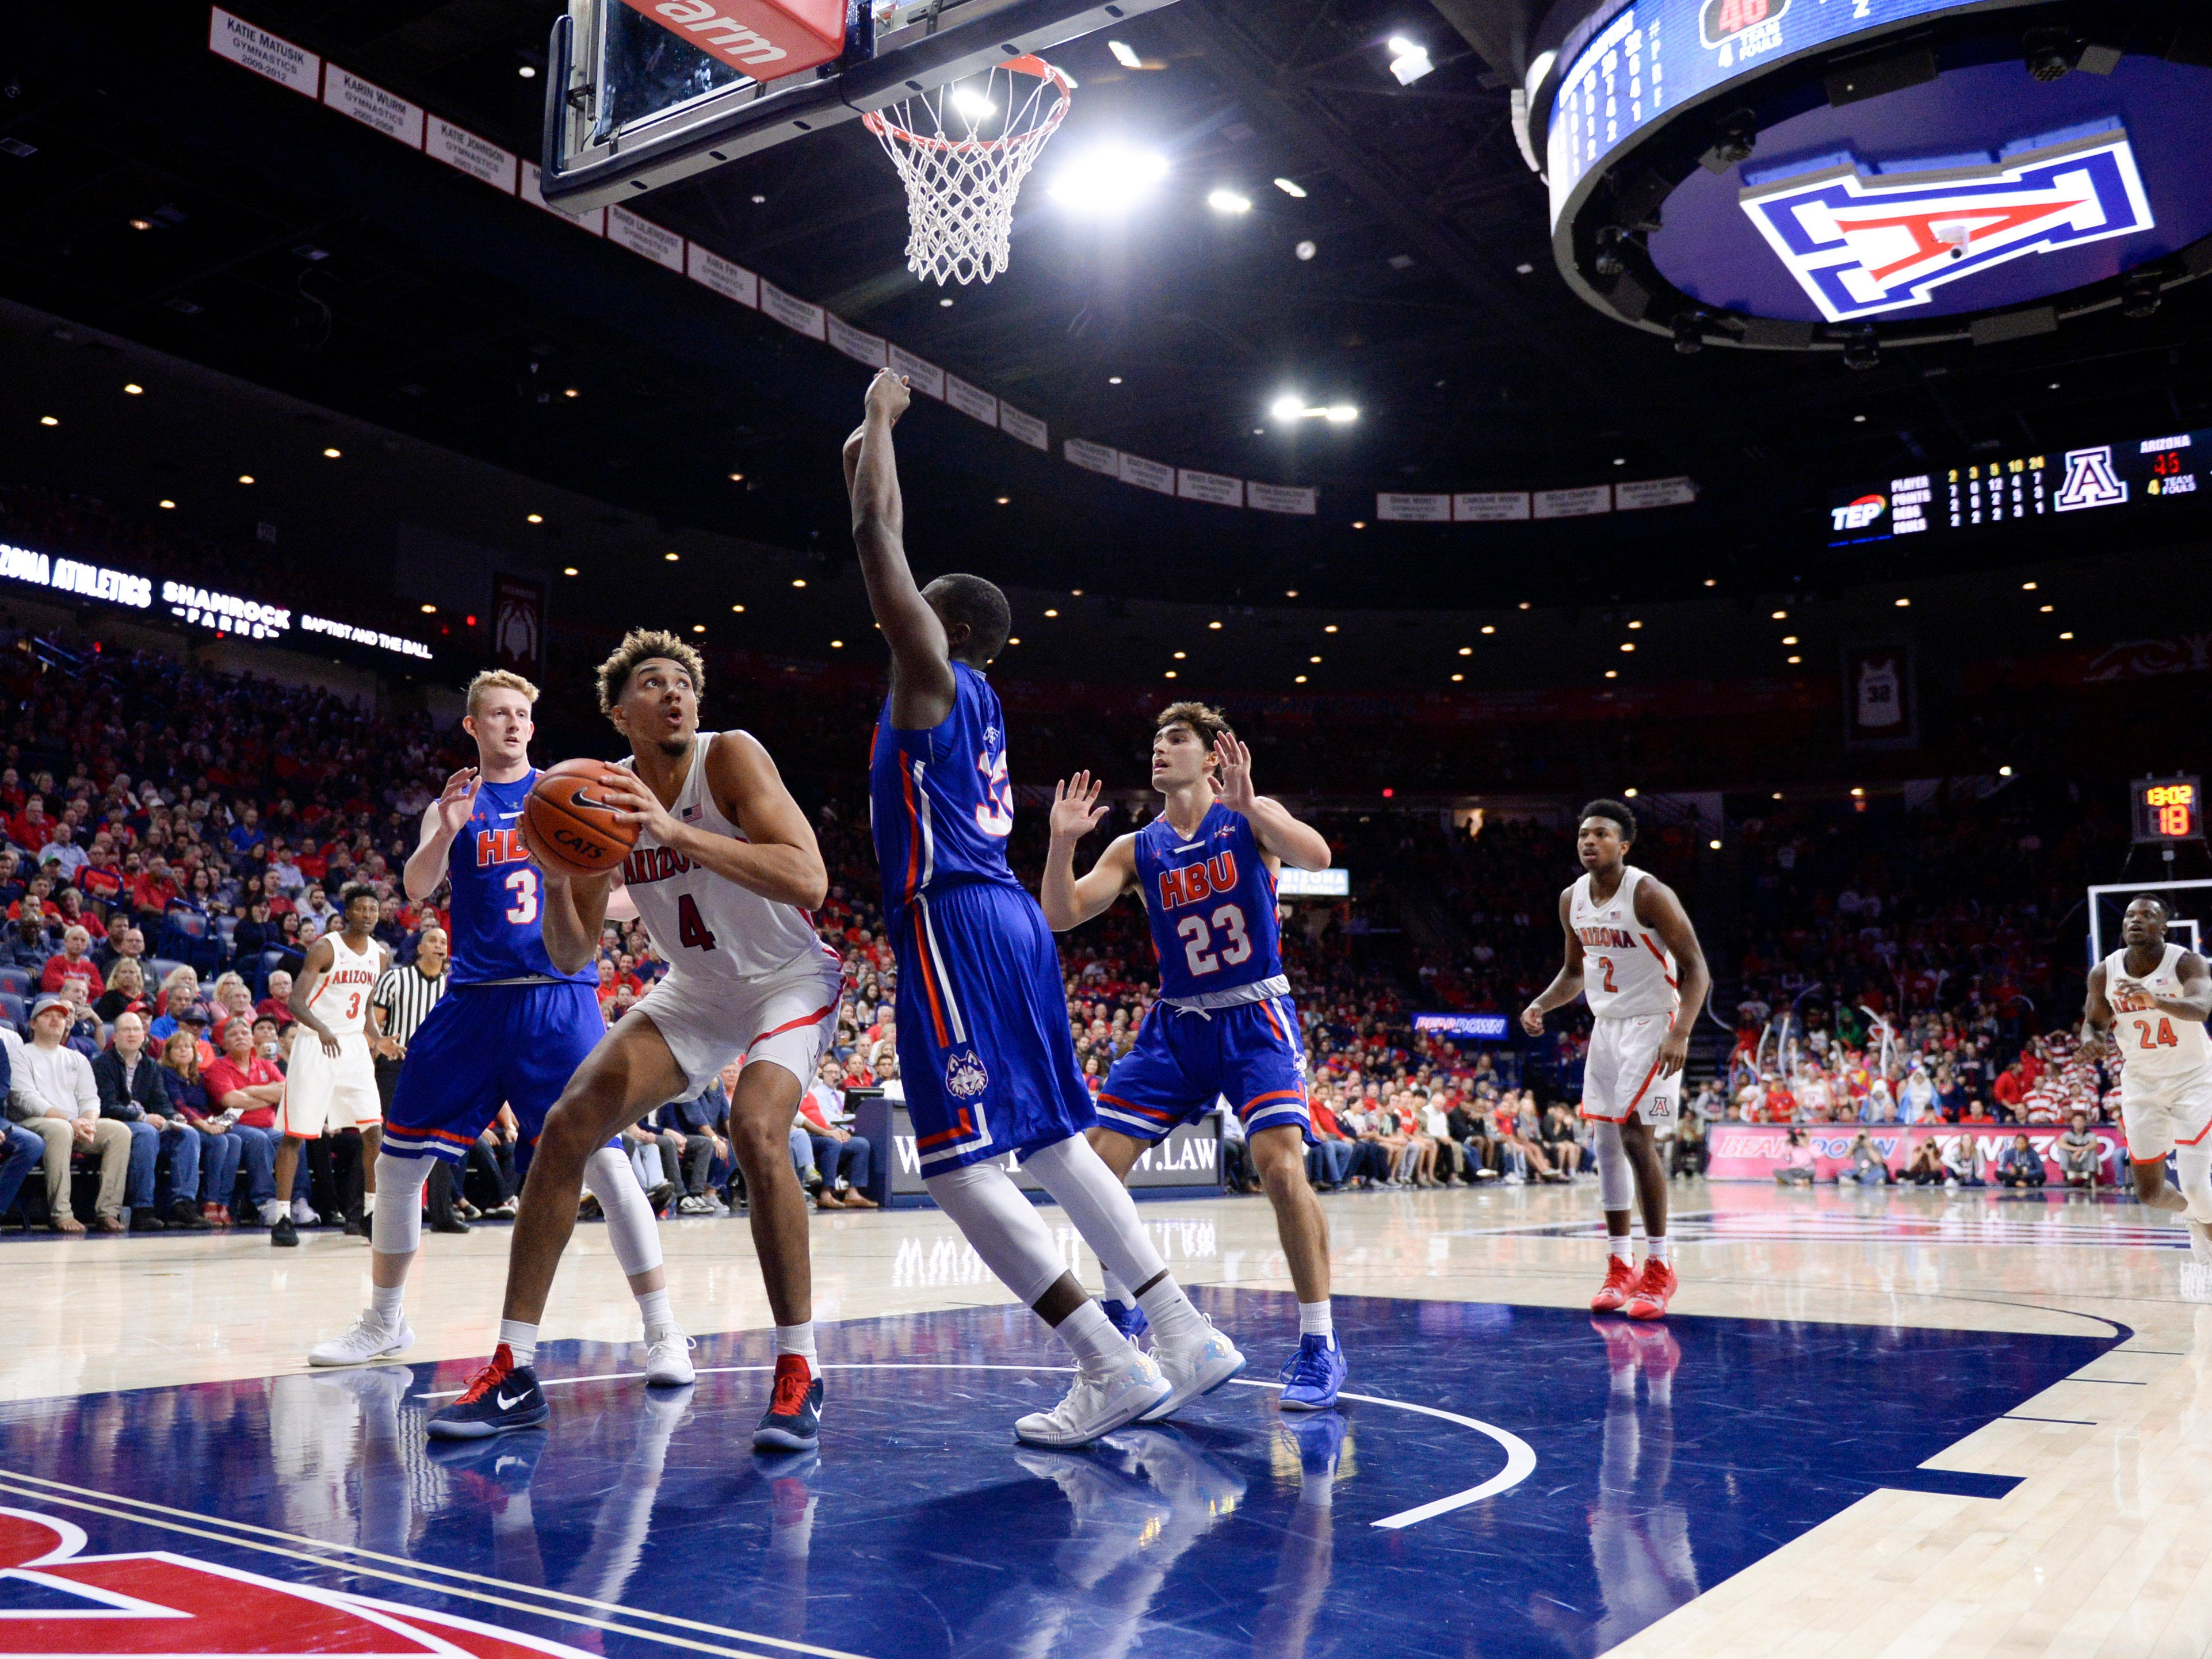 Nov 7, 2018; Tucson, AZ, USA; Arizona Wildcats center Chase Jeter (4) shoots the ball as Houston Baptist Huskies forward Jackson Stent (3) forward Benjamin Uloko (32)  and guard Oliver Lynch-Daniels (23) defend during the second half at McKale Center. Mandatory Credit: Casey Sapio-USA TODAY Sports